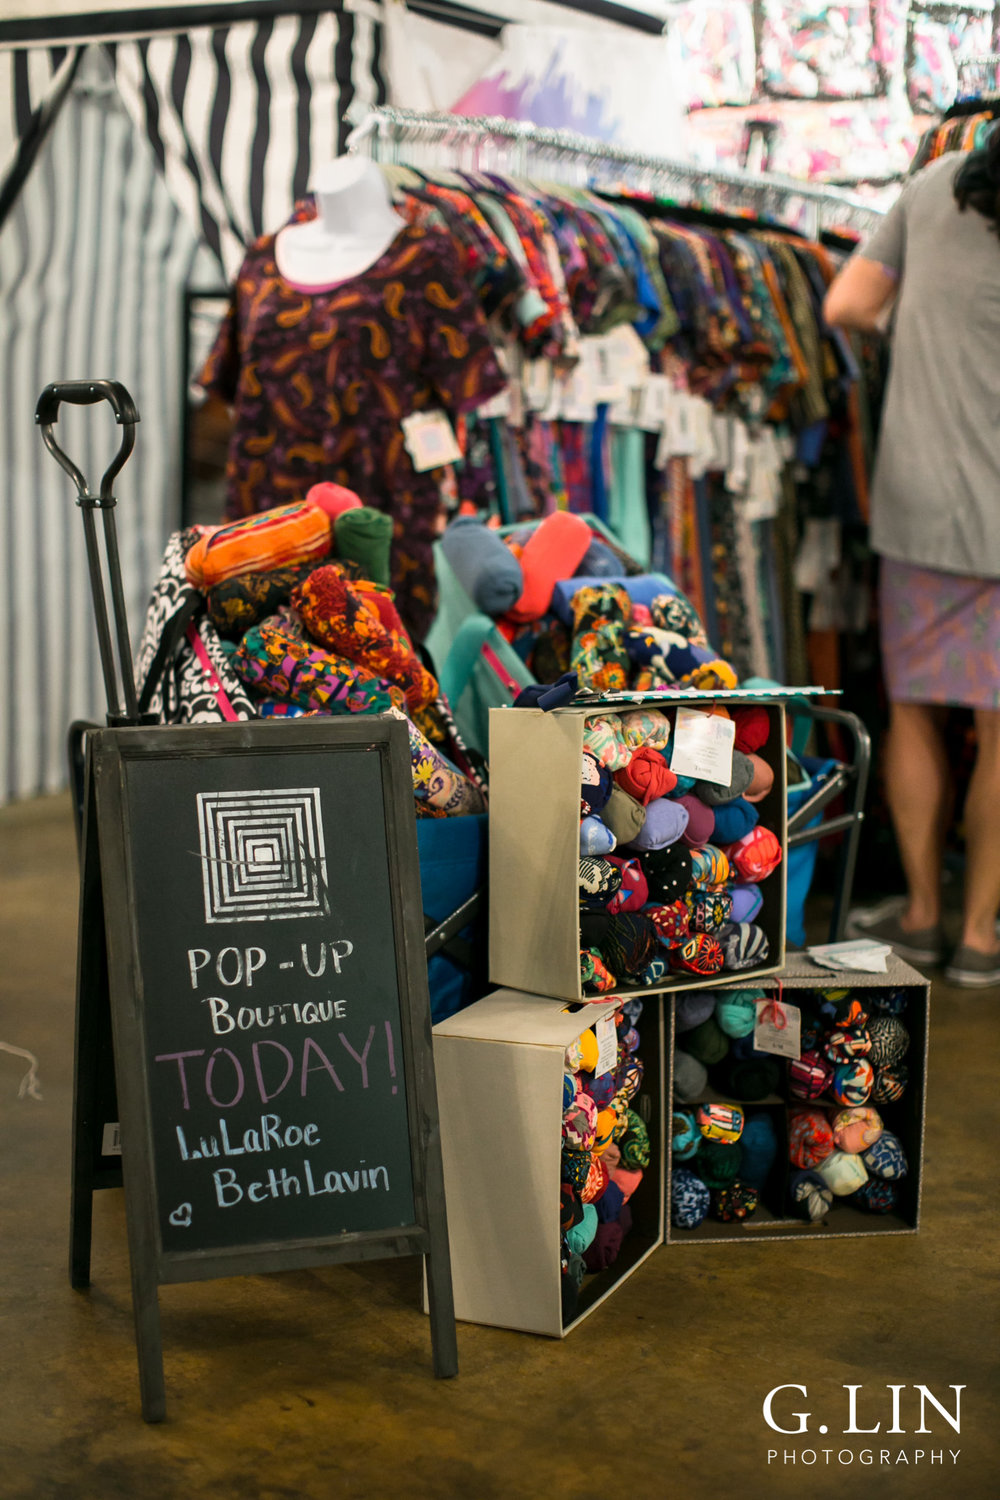 Raleigh Event Photographer | G. Lin Photography | Close up of lularoe clothing